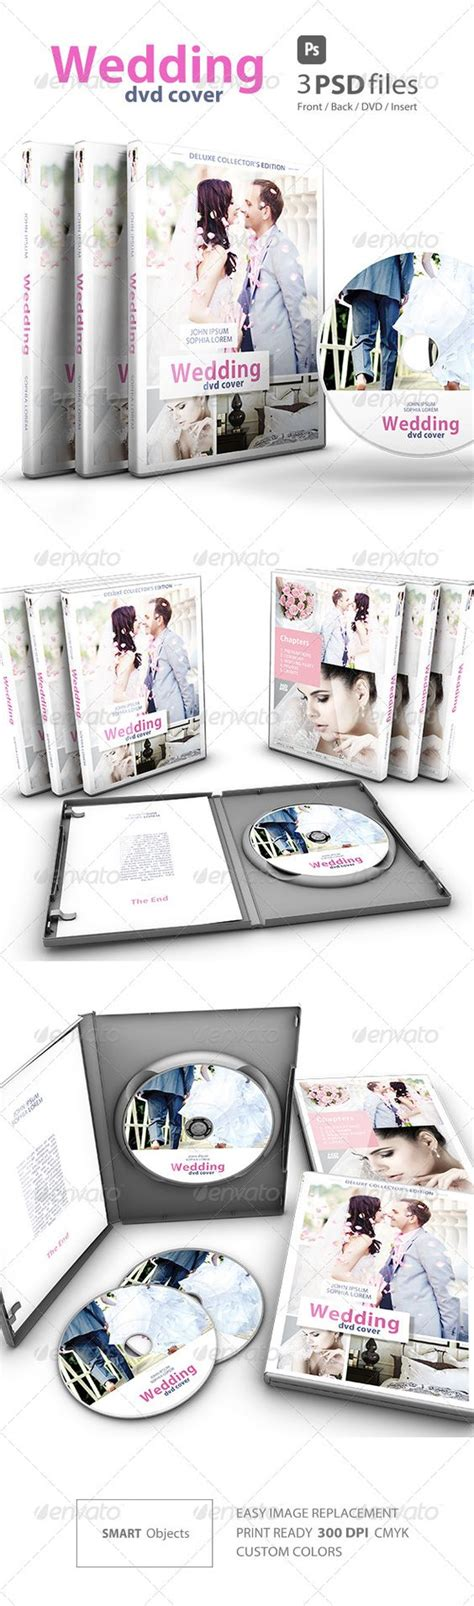 design cover wedding wedding dvd br cover vol 2 cover design wedding and